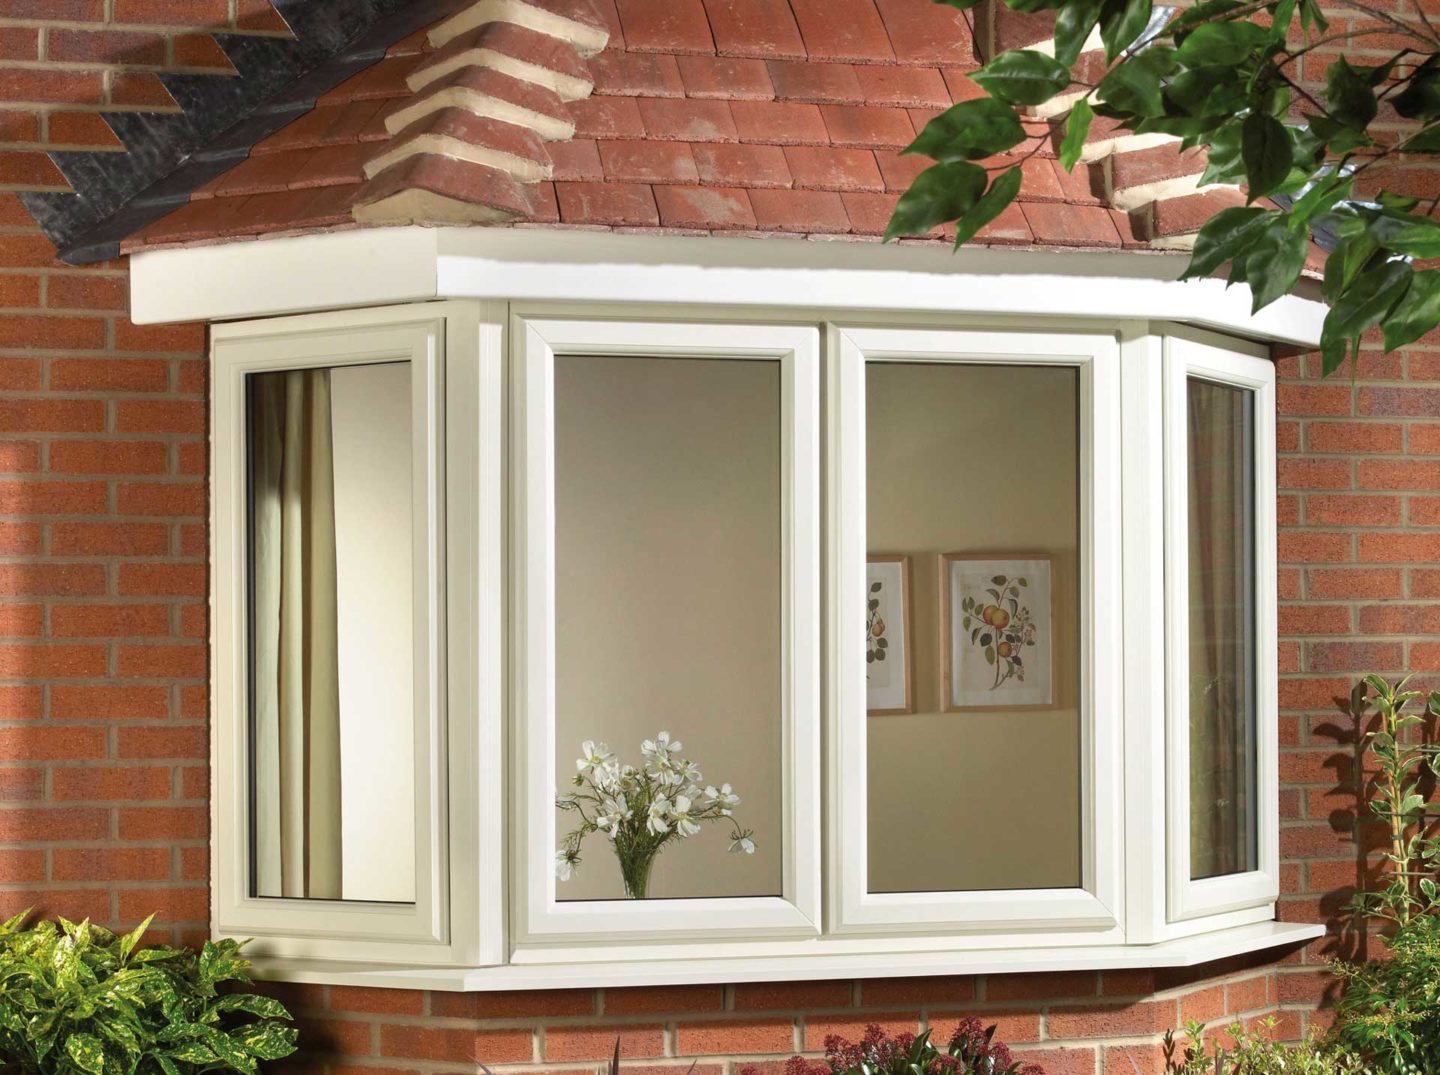 Acorn Trade Windows & Doors Nottingham and Padiham